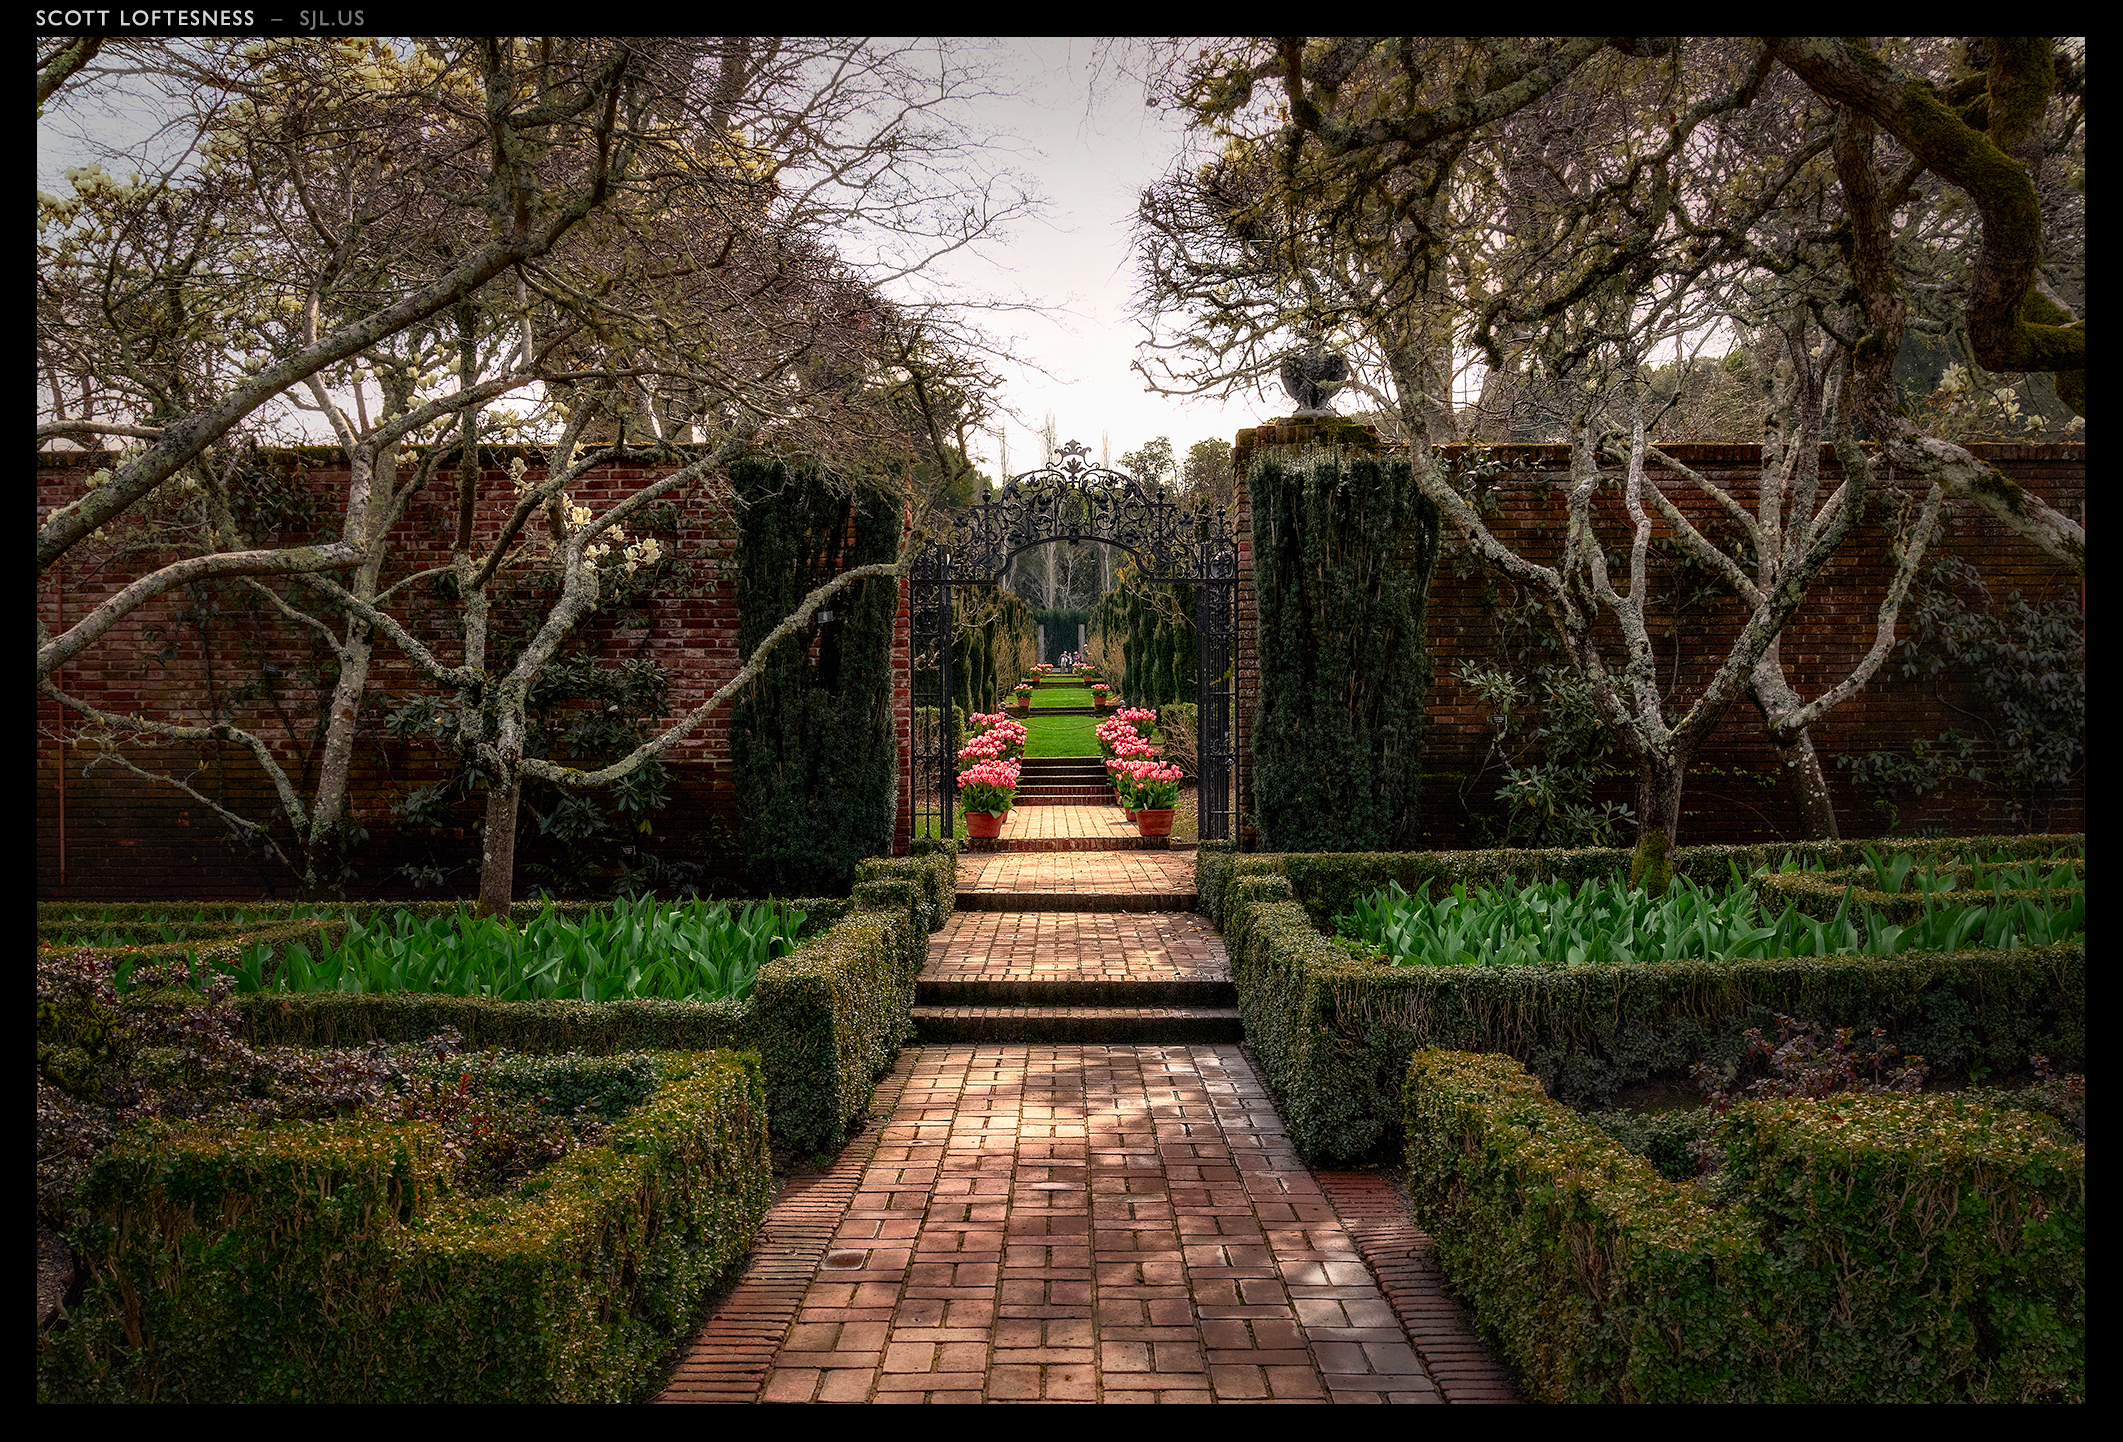 Garden Walk - Filoli - 2013 by Scott Loftesness